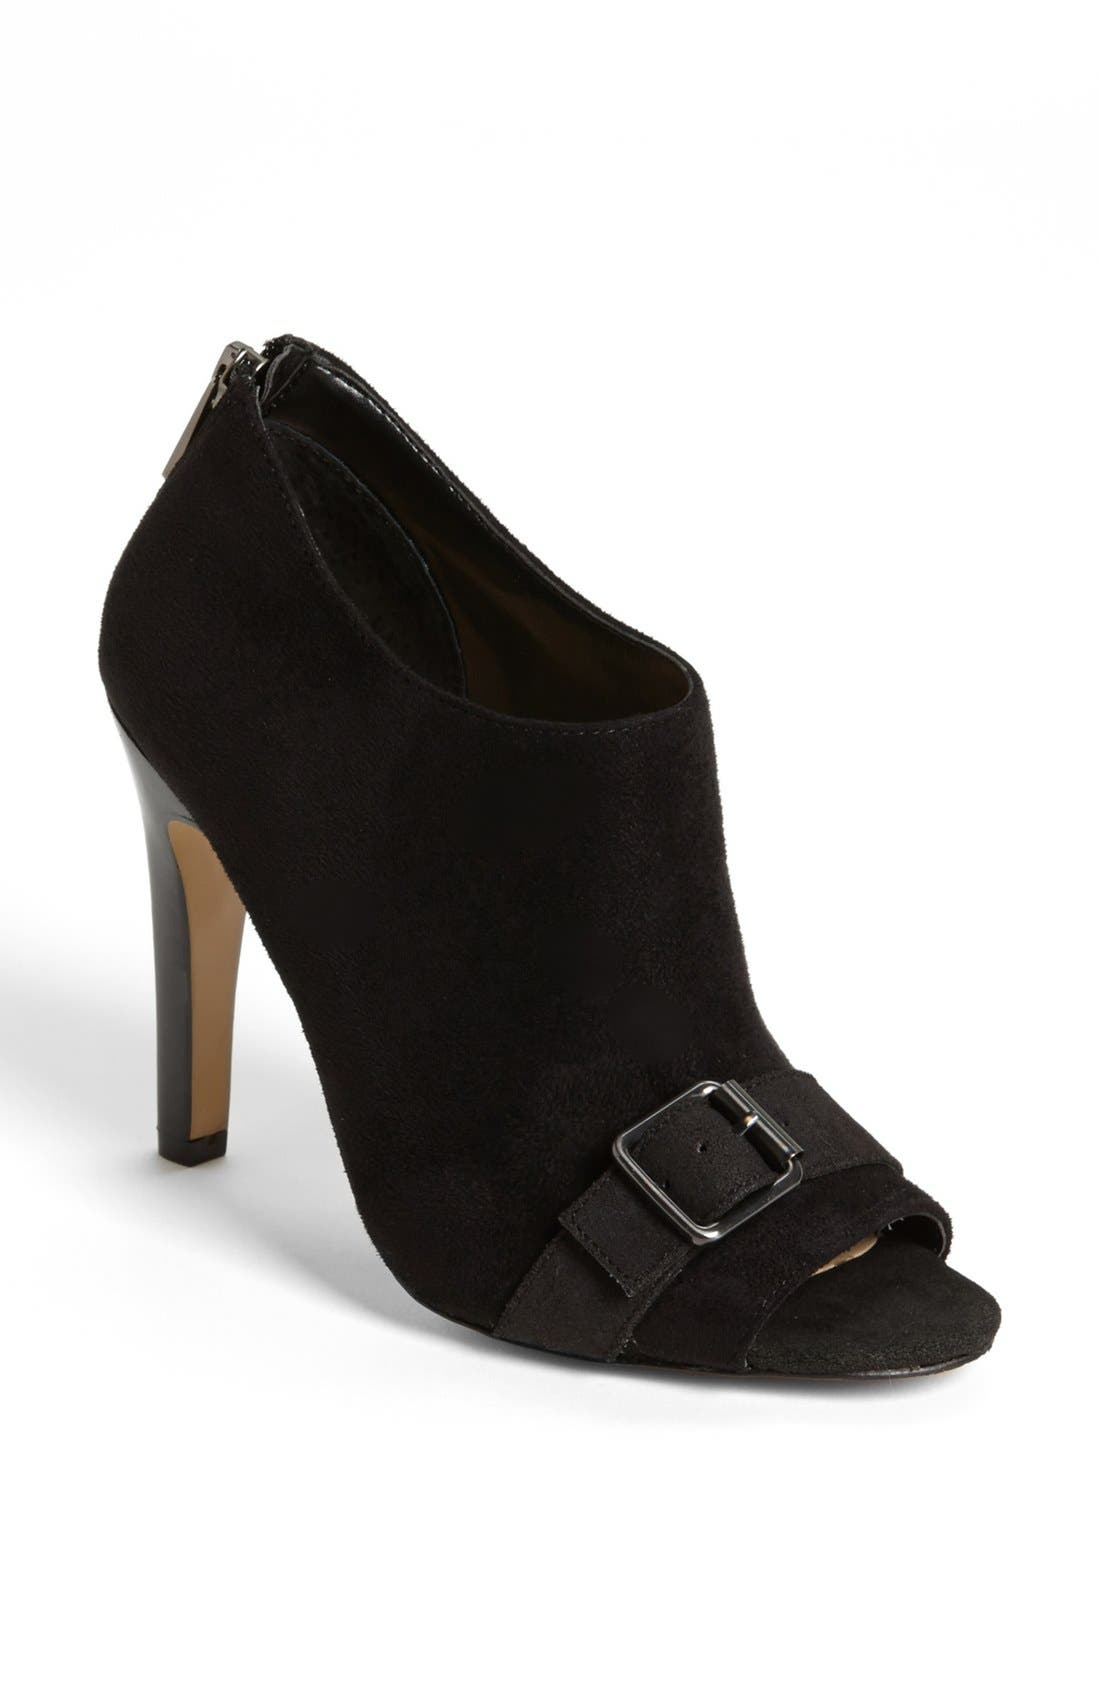 Alternate Image 1 Selected - Sole Society 'Chrissy' Bootie